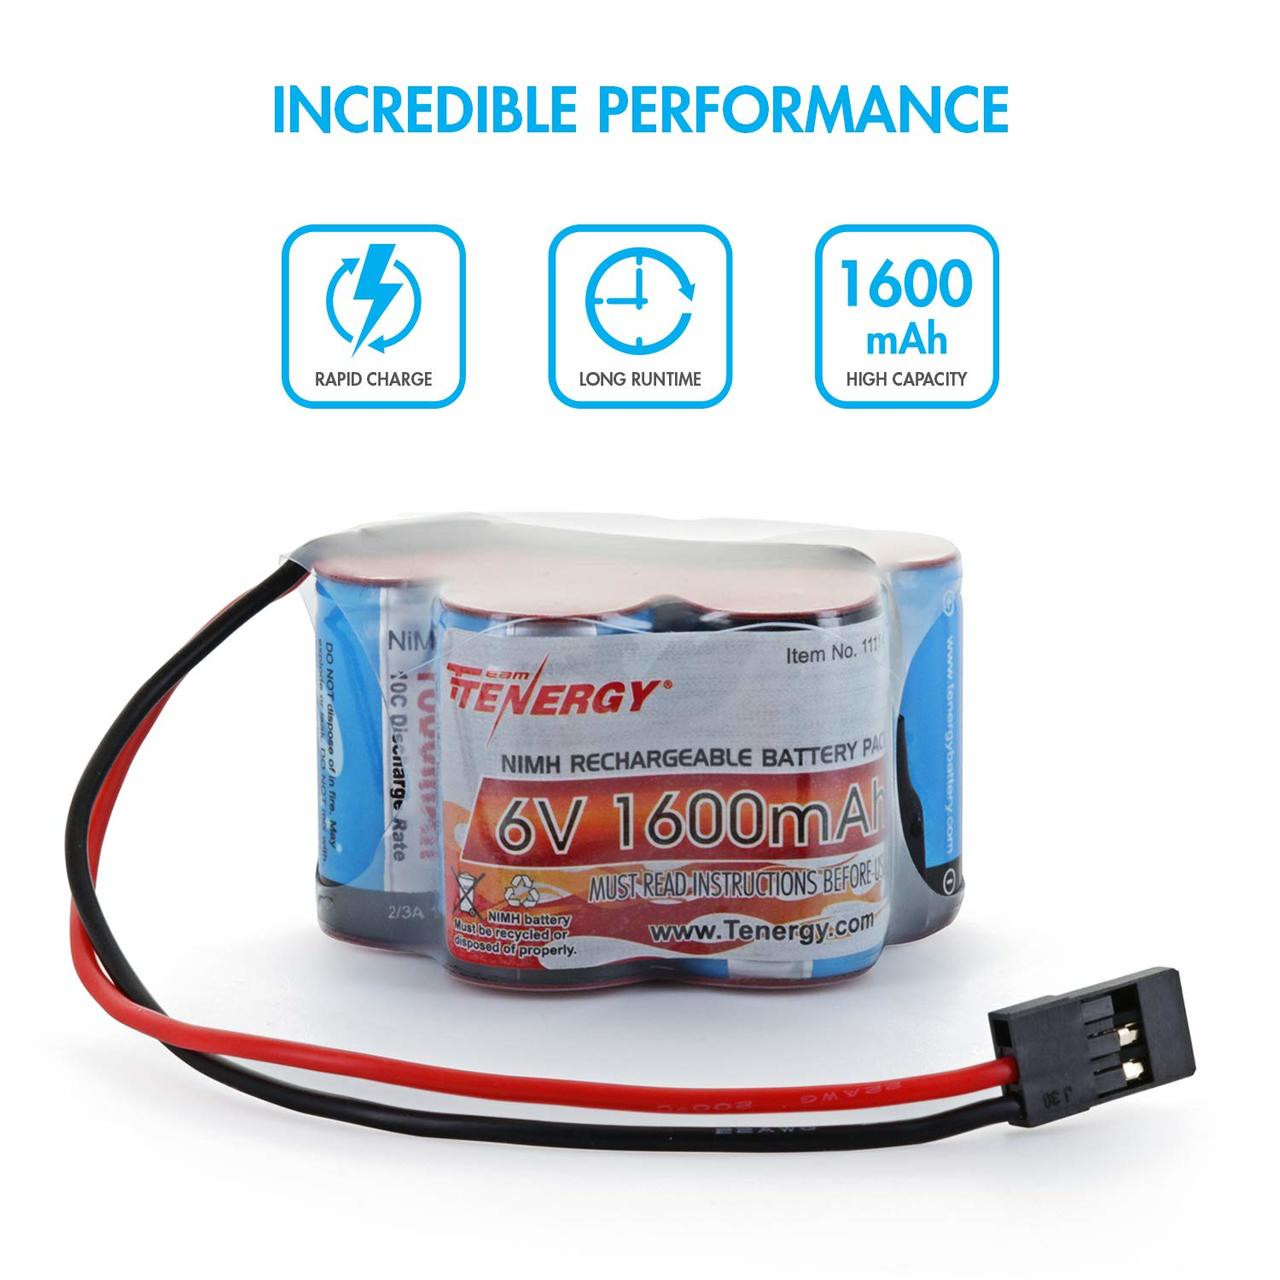 6V Tenergy 1600mAh NiMH Side by Side  Double Hump Battery Pack with Hitec Connector